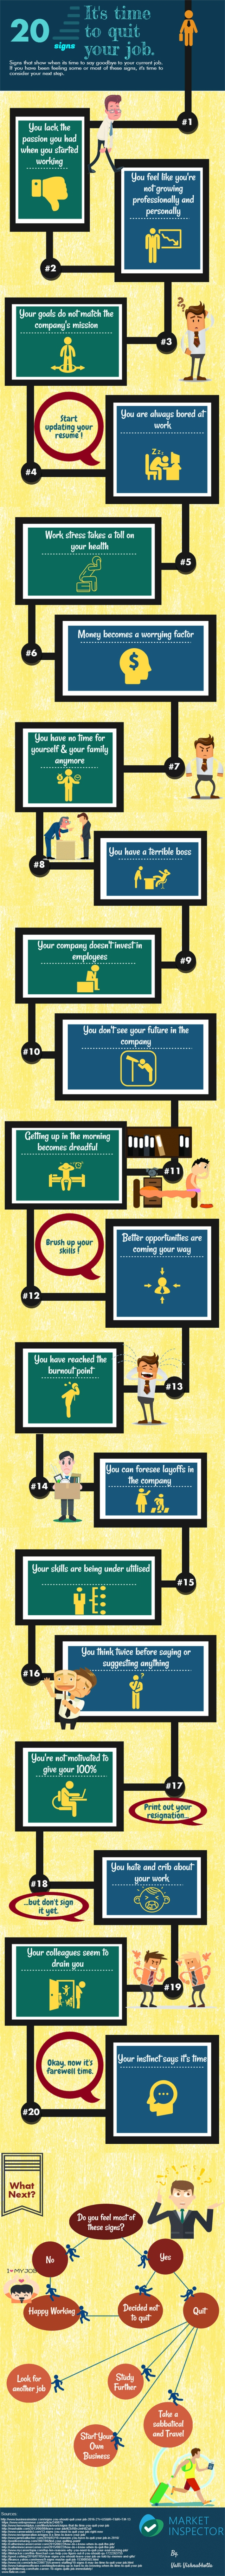 20-signs-that-show-you-should-quit-your-job-start-your-own-business